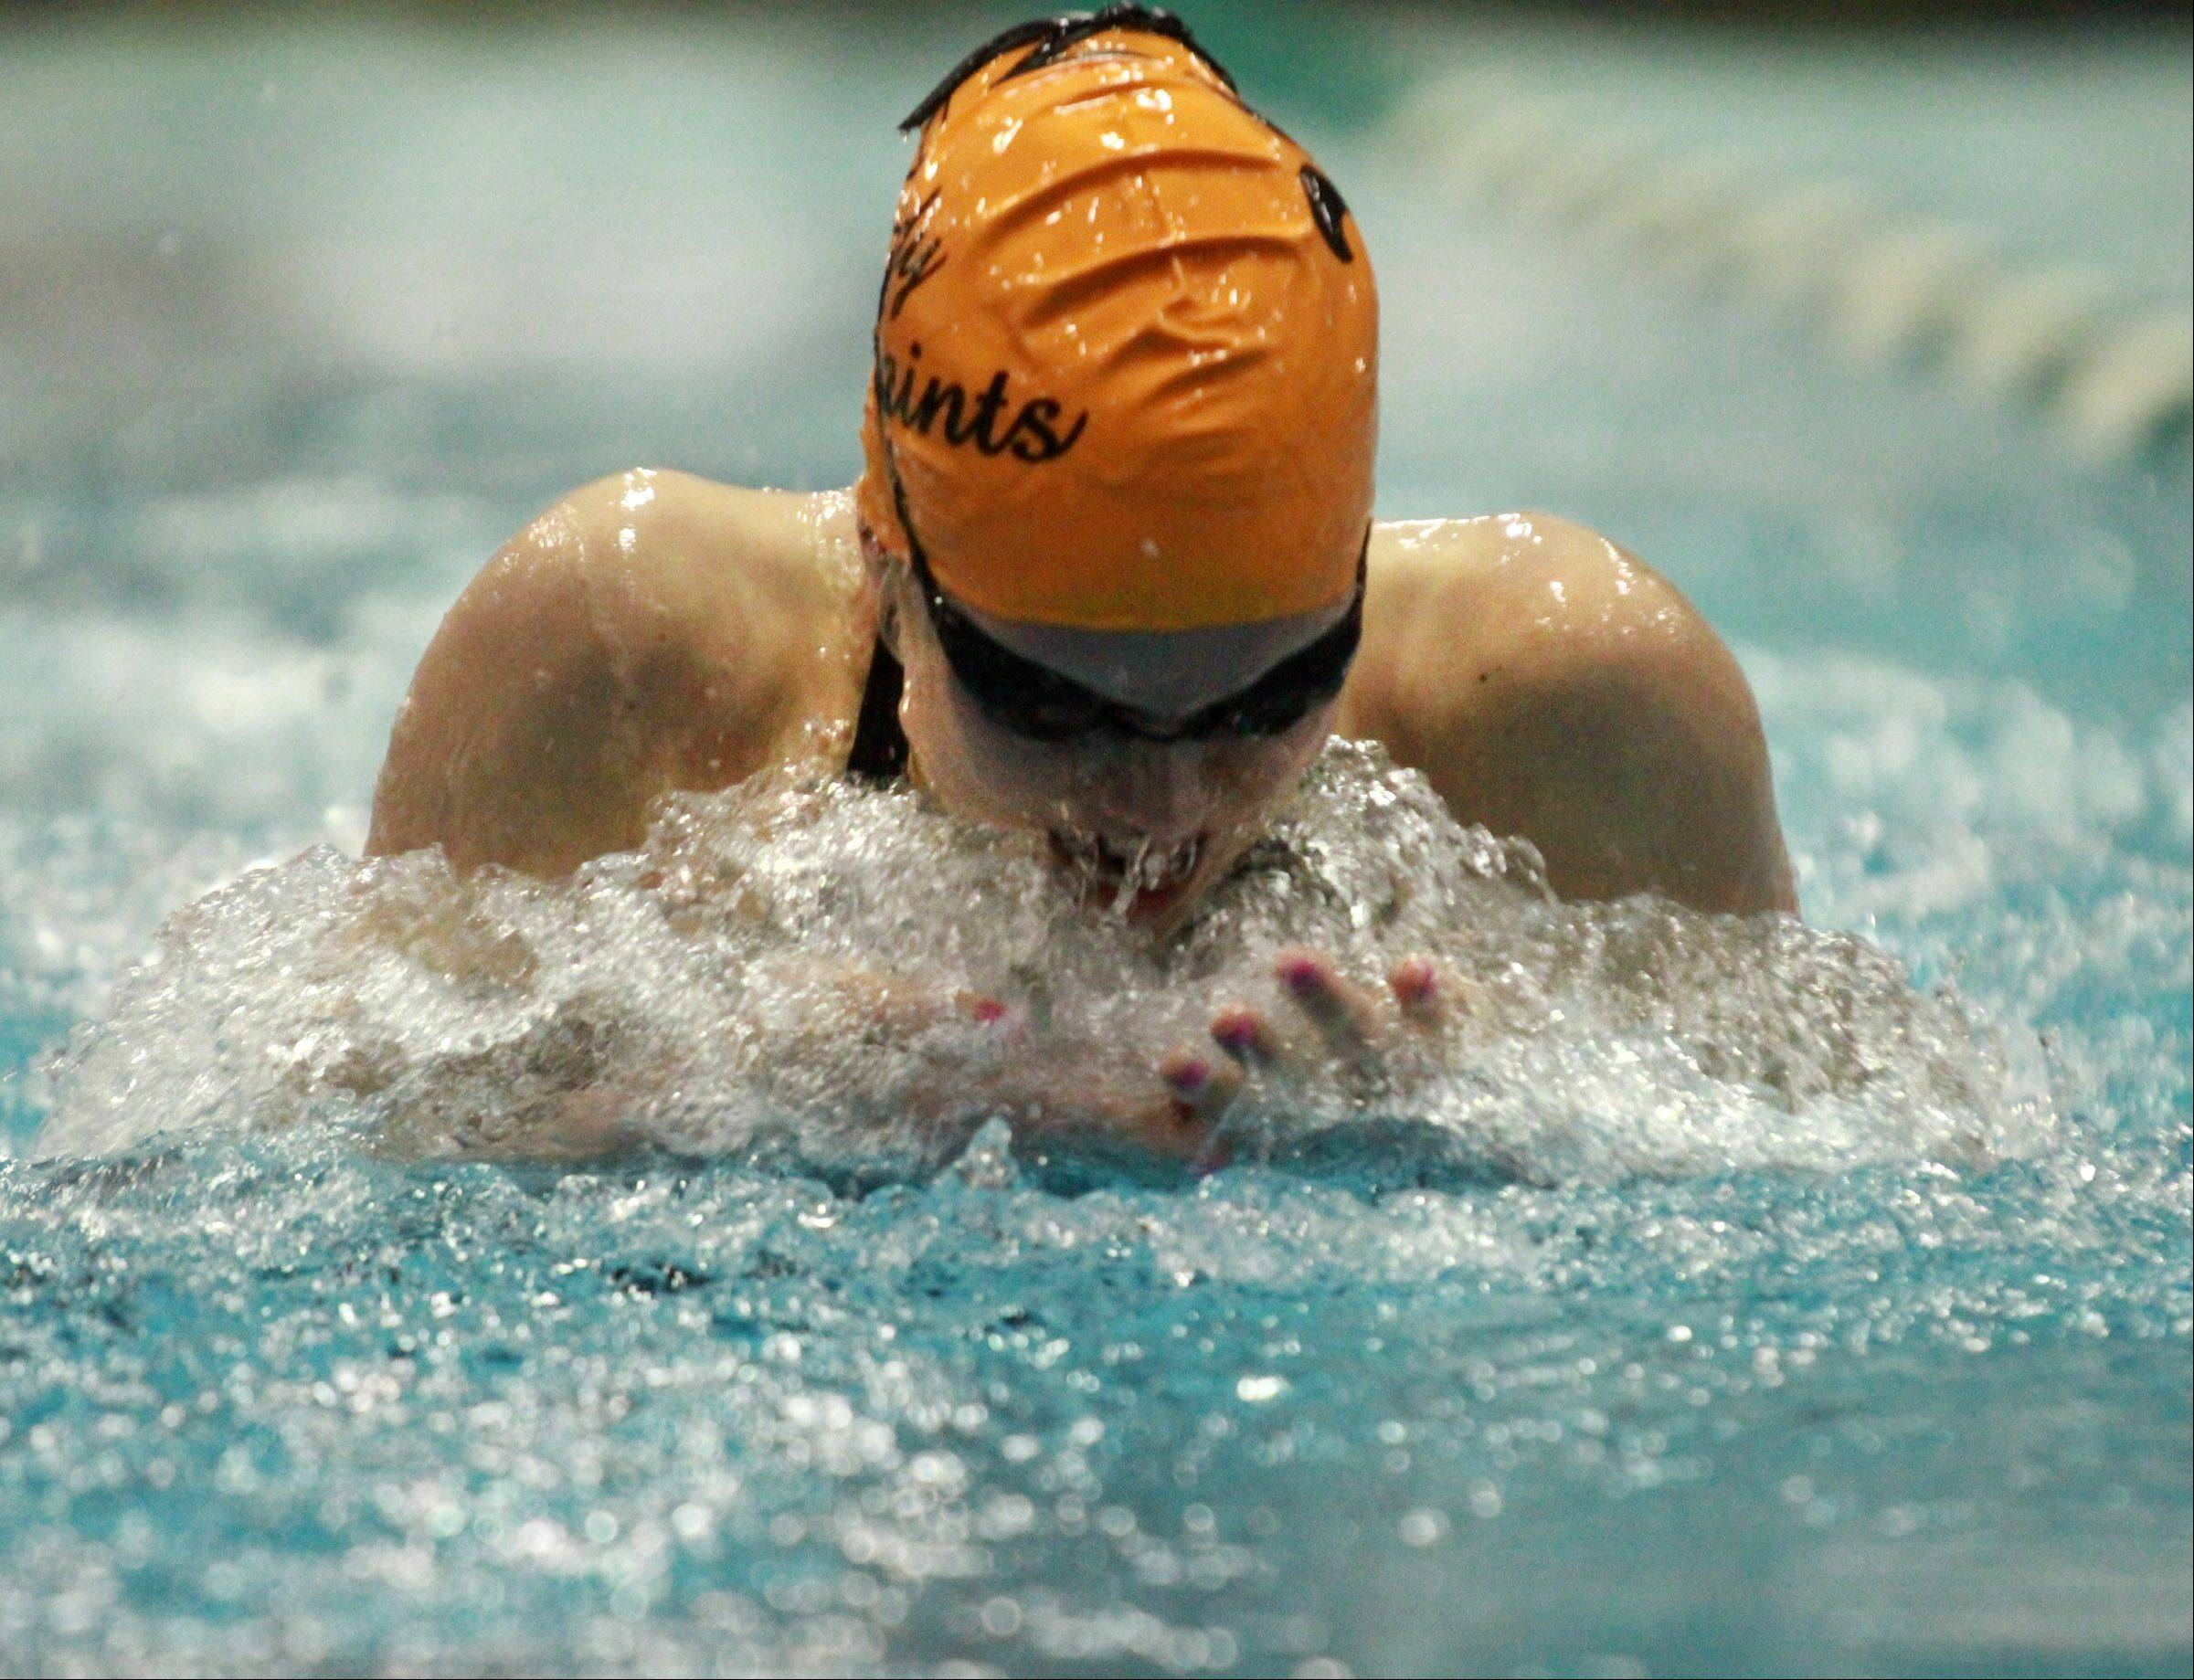 St. Charles East Shea Hoyt placed 3rd in the 100 yard breast stroke at the girls state swimming finals on Saturday in Winnetka.